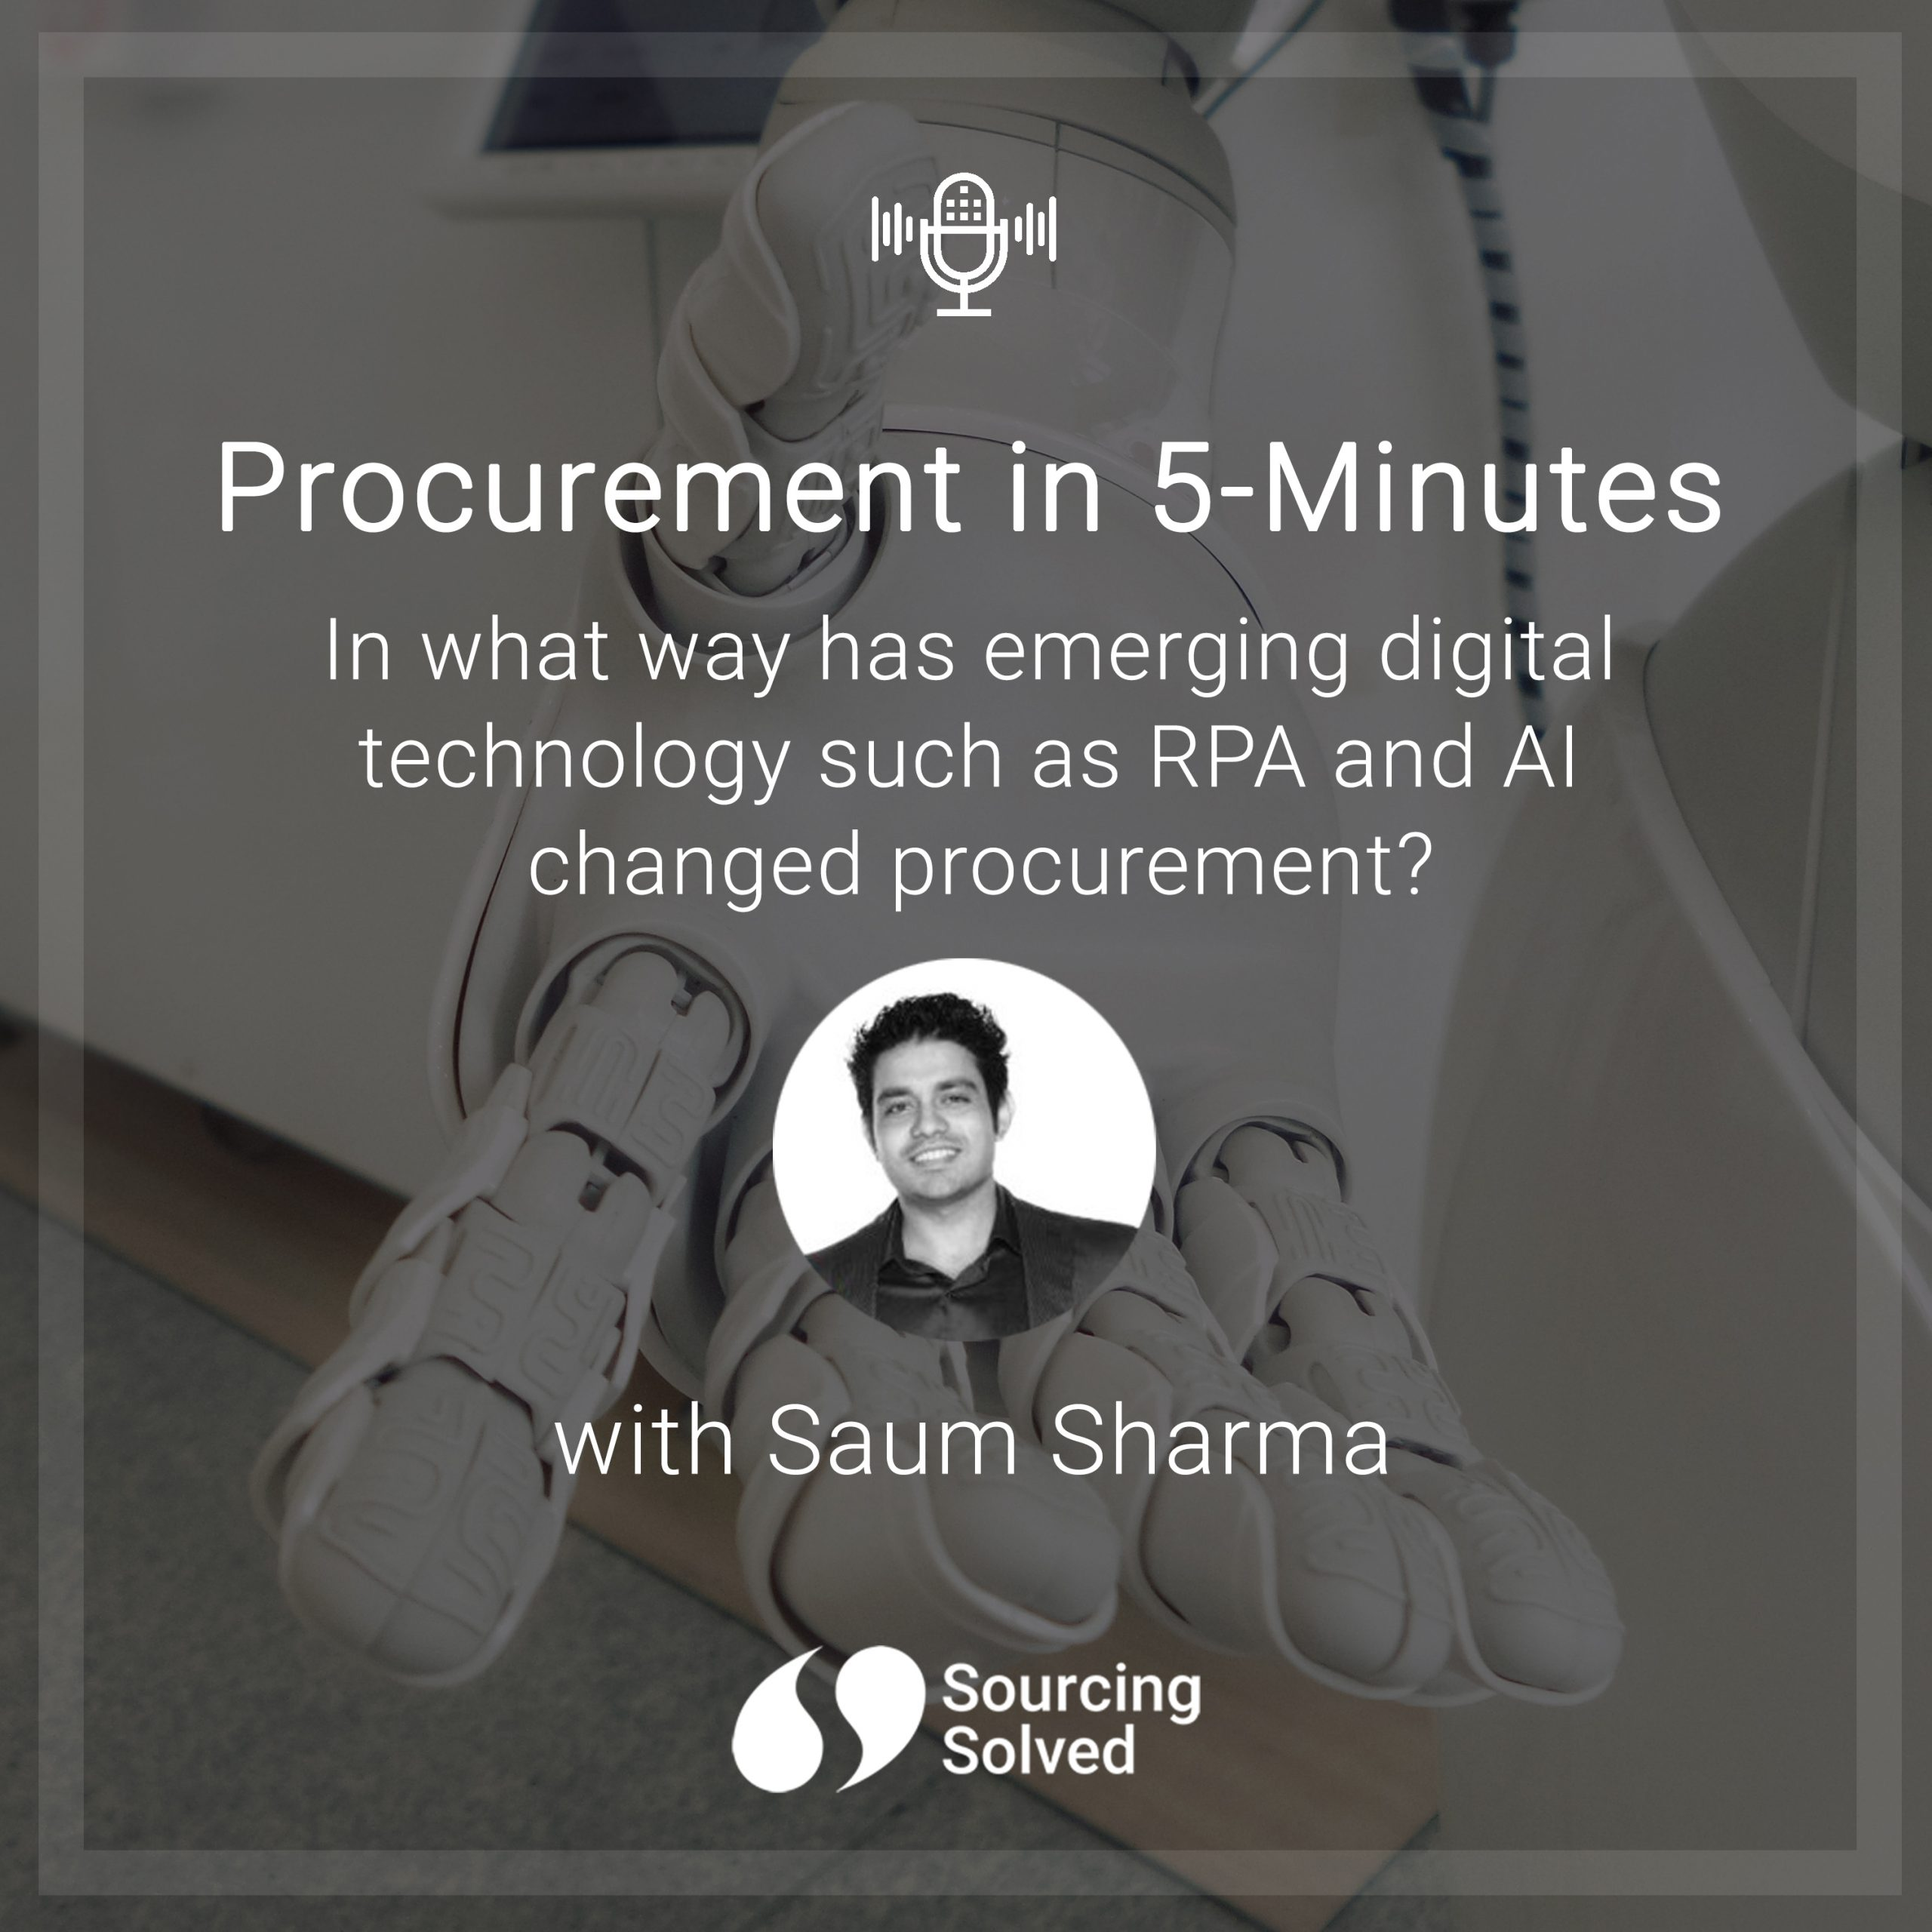 Procurement in 5-Minutes: In what way has emerging digital technology such as RPA and AI changed procurement?